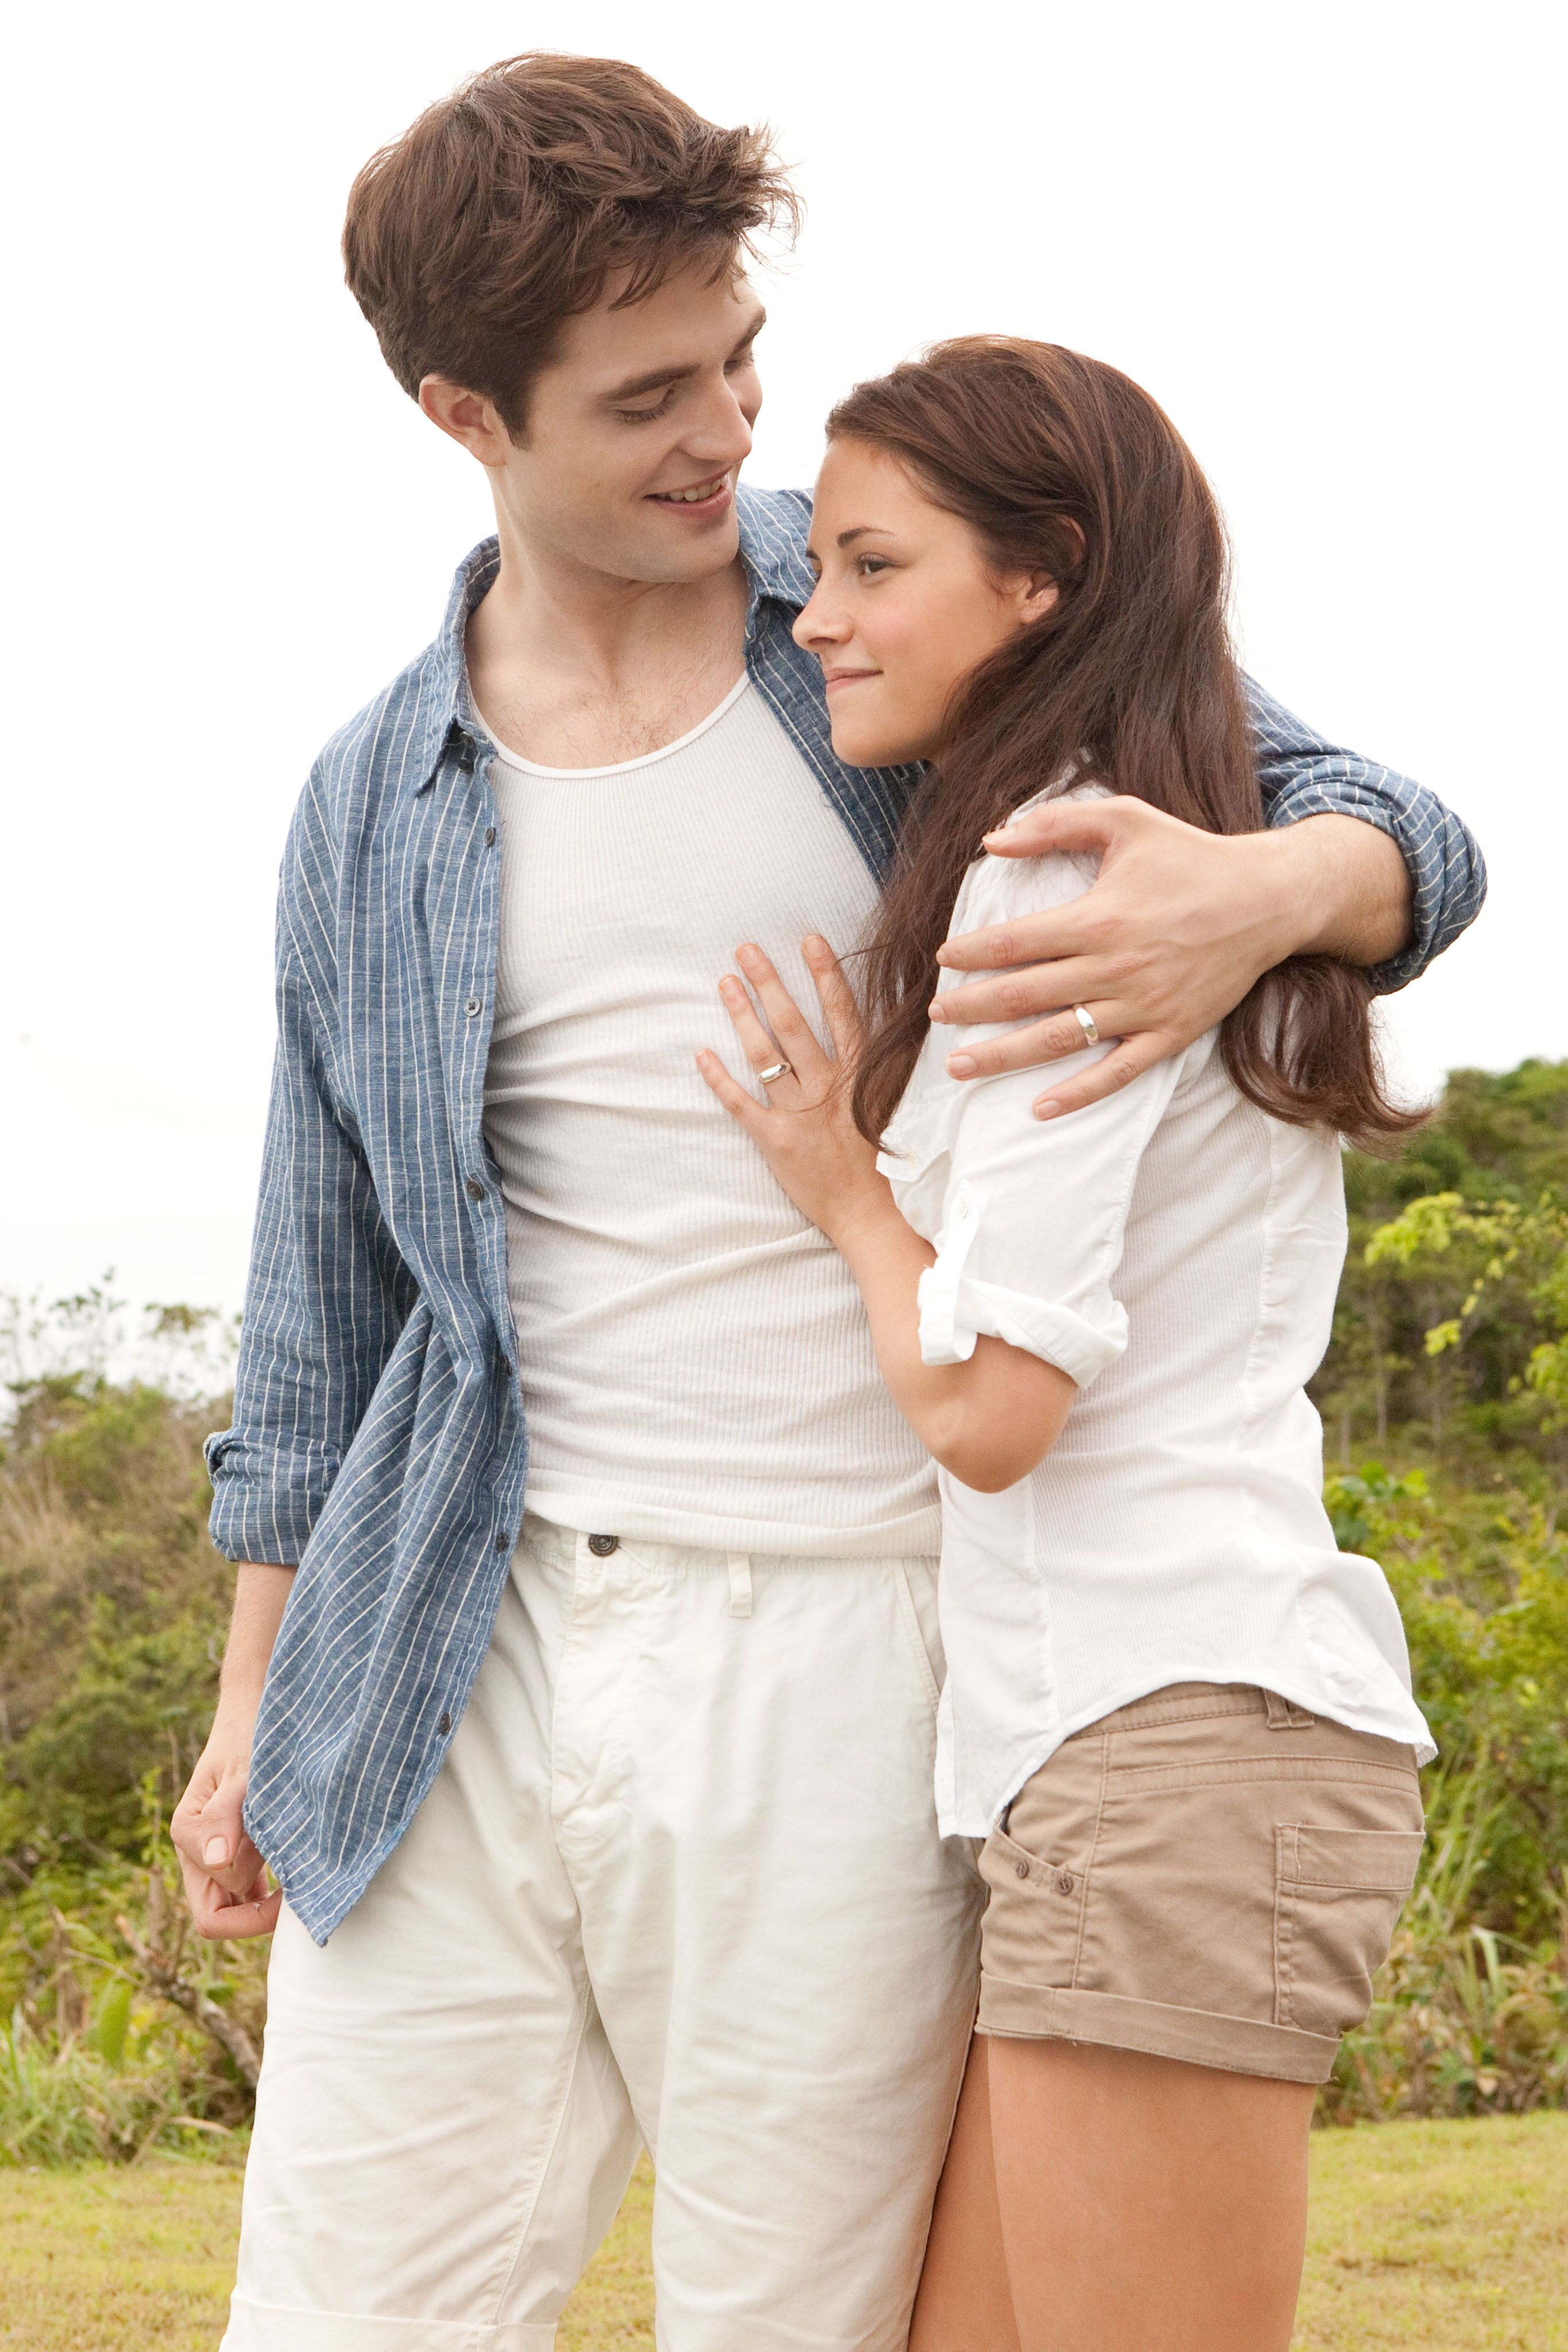 Image cullen family breaking dawn wallpaper twilight series - Nine Hot New Pictures Of Breaking Dawn S Prewedding And Honeymoon Moments Twilight Movietwilight Seriestwilight